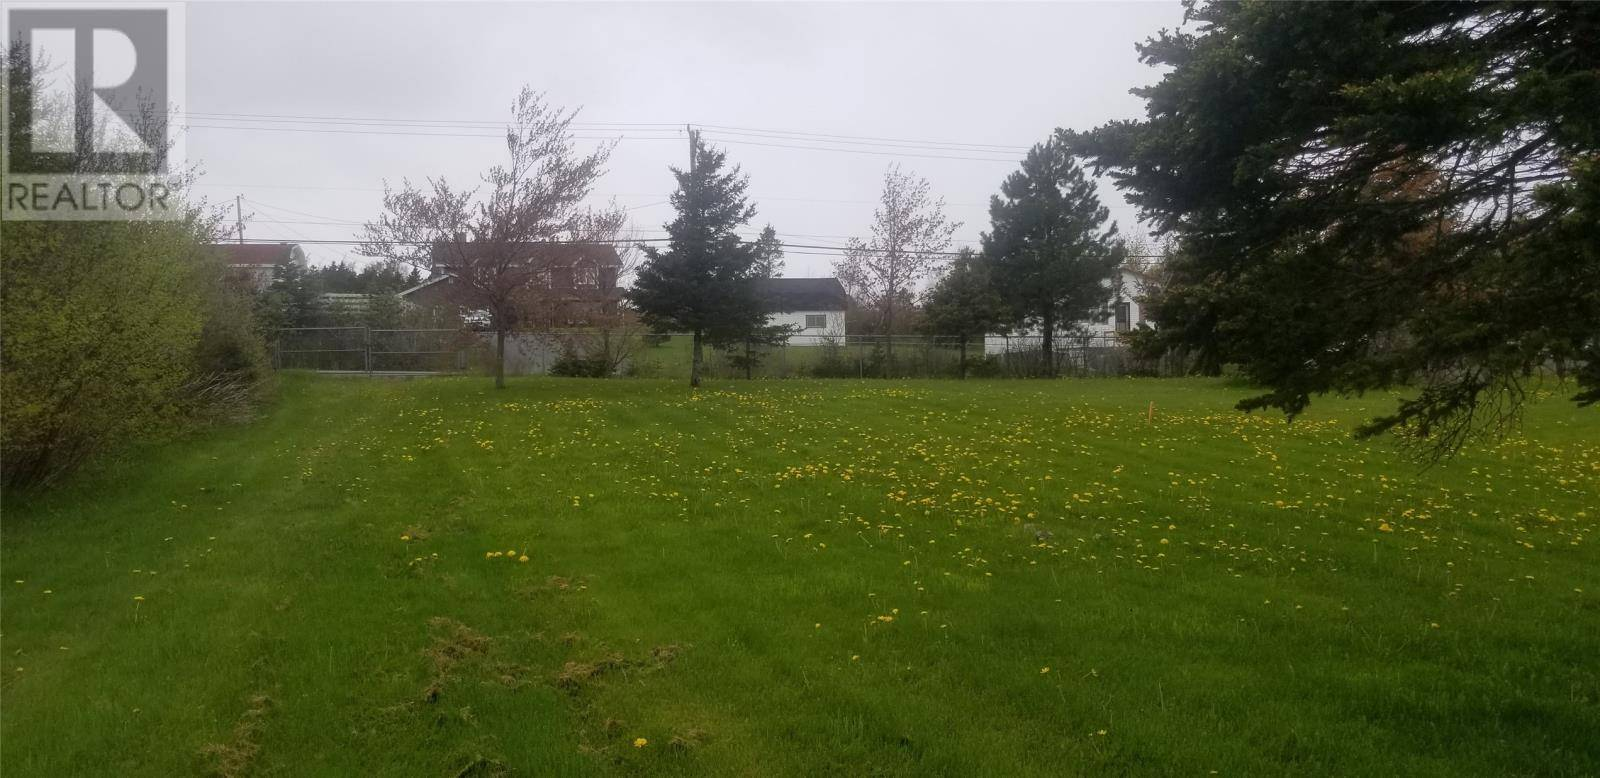 Residential property for sale at 55 Foxtrap Access Rd Conception Bay South Newfoundland - MLS: 1197693